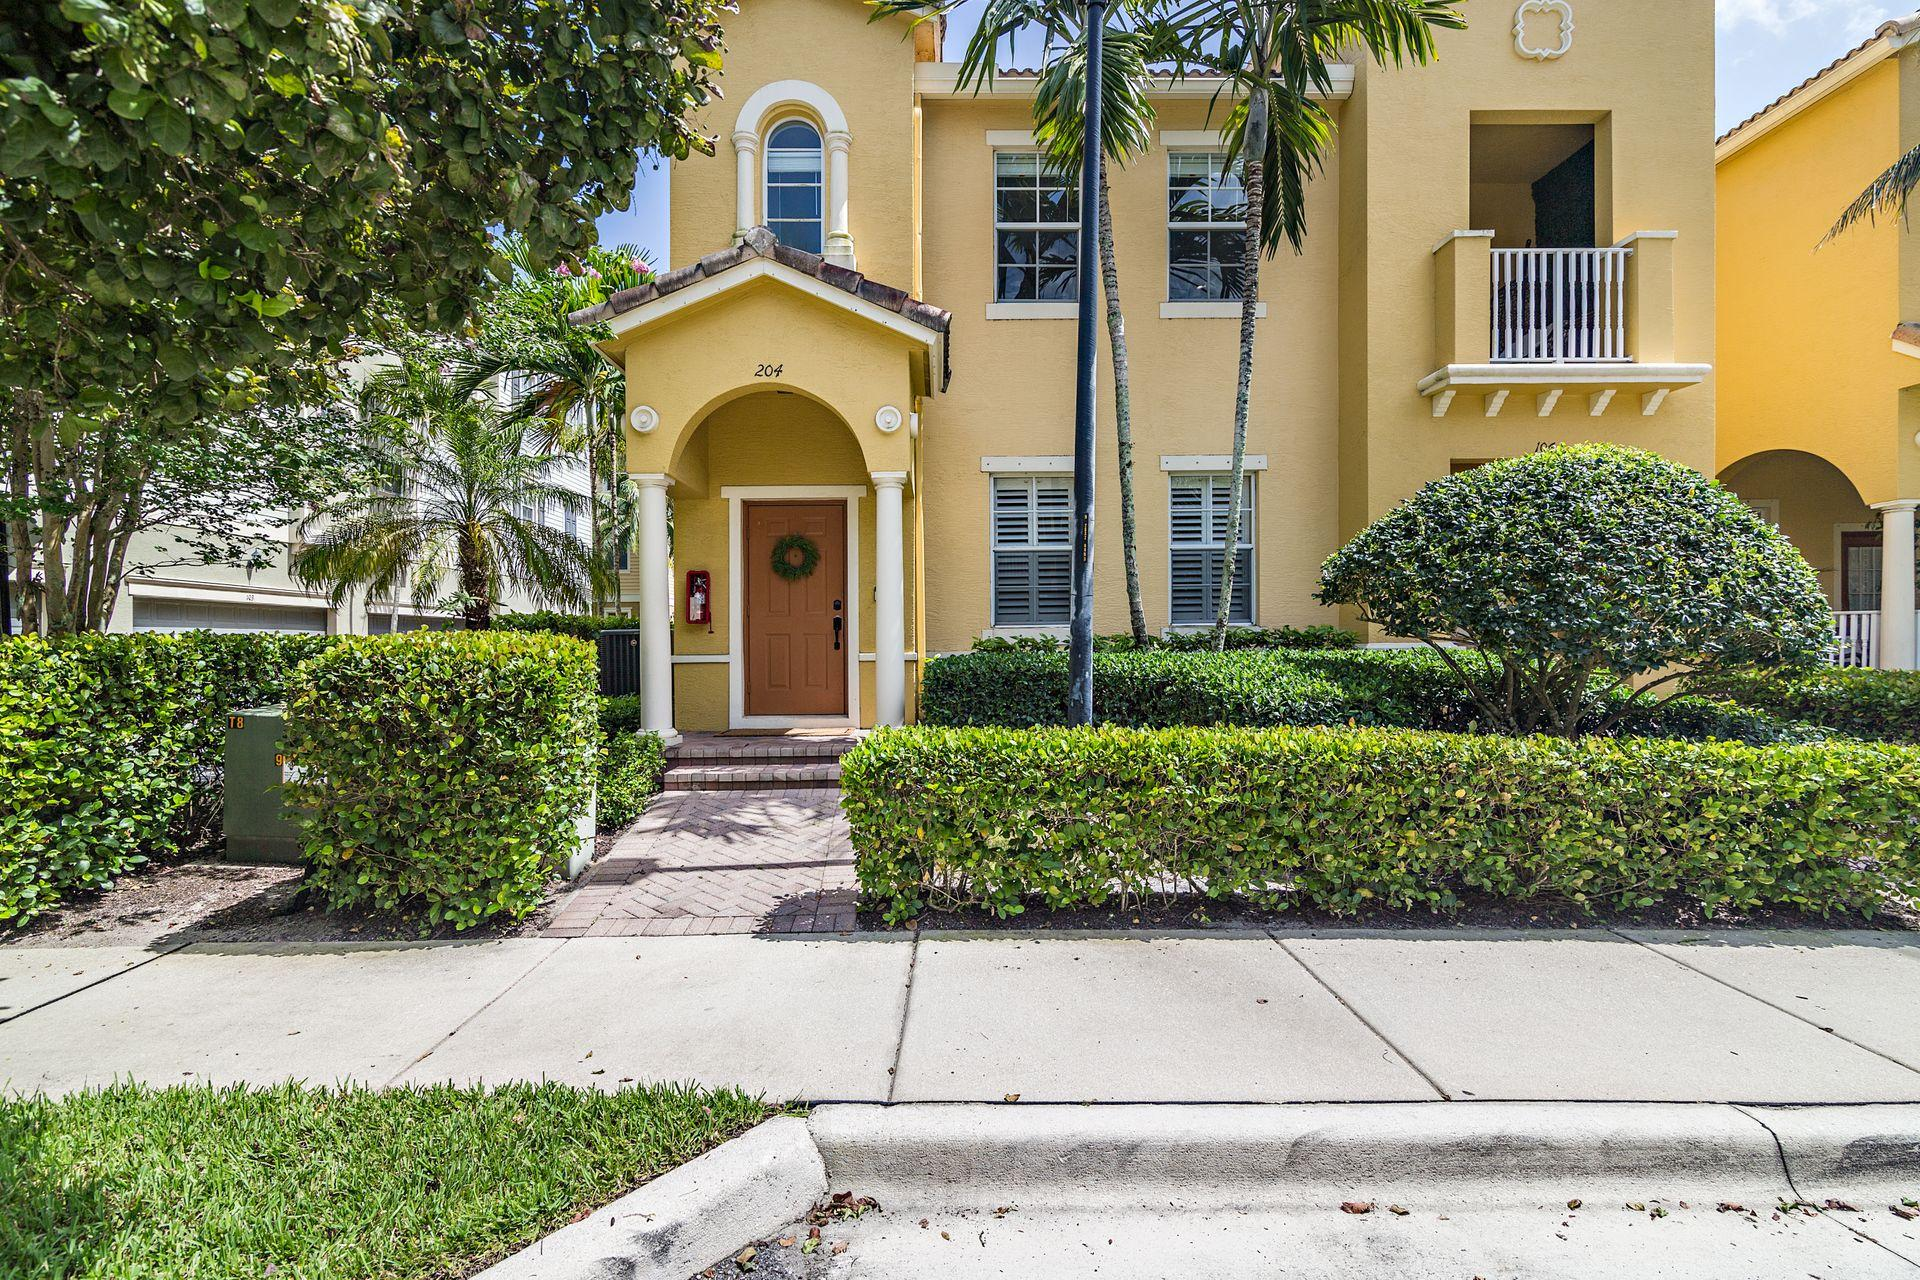 108 W Pigeon Plum Drive  204, Jupiter in Palm Beach County, FL 33458 Home for Sale